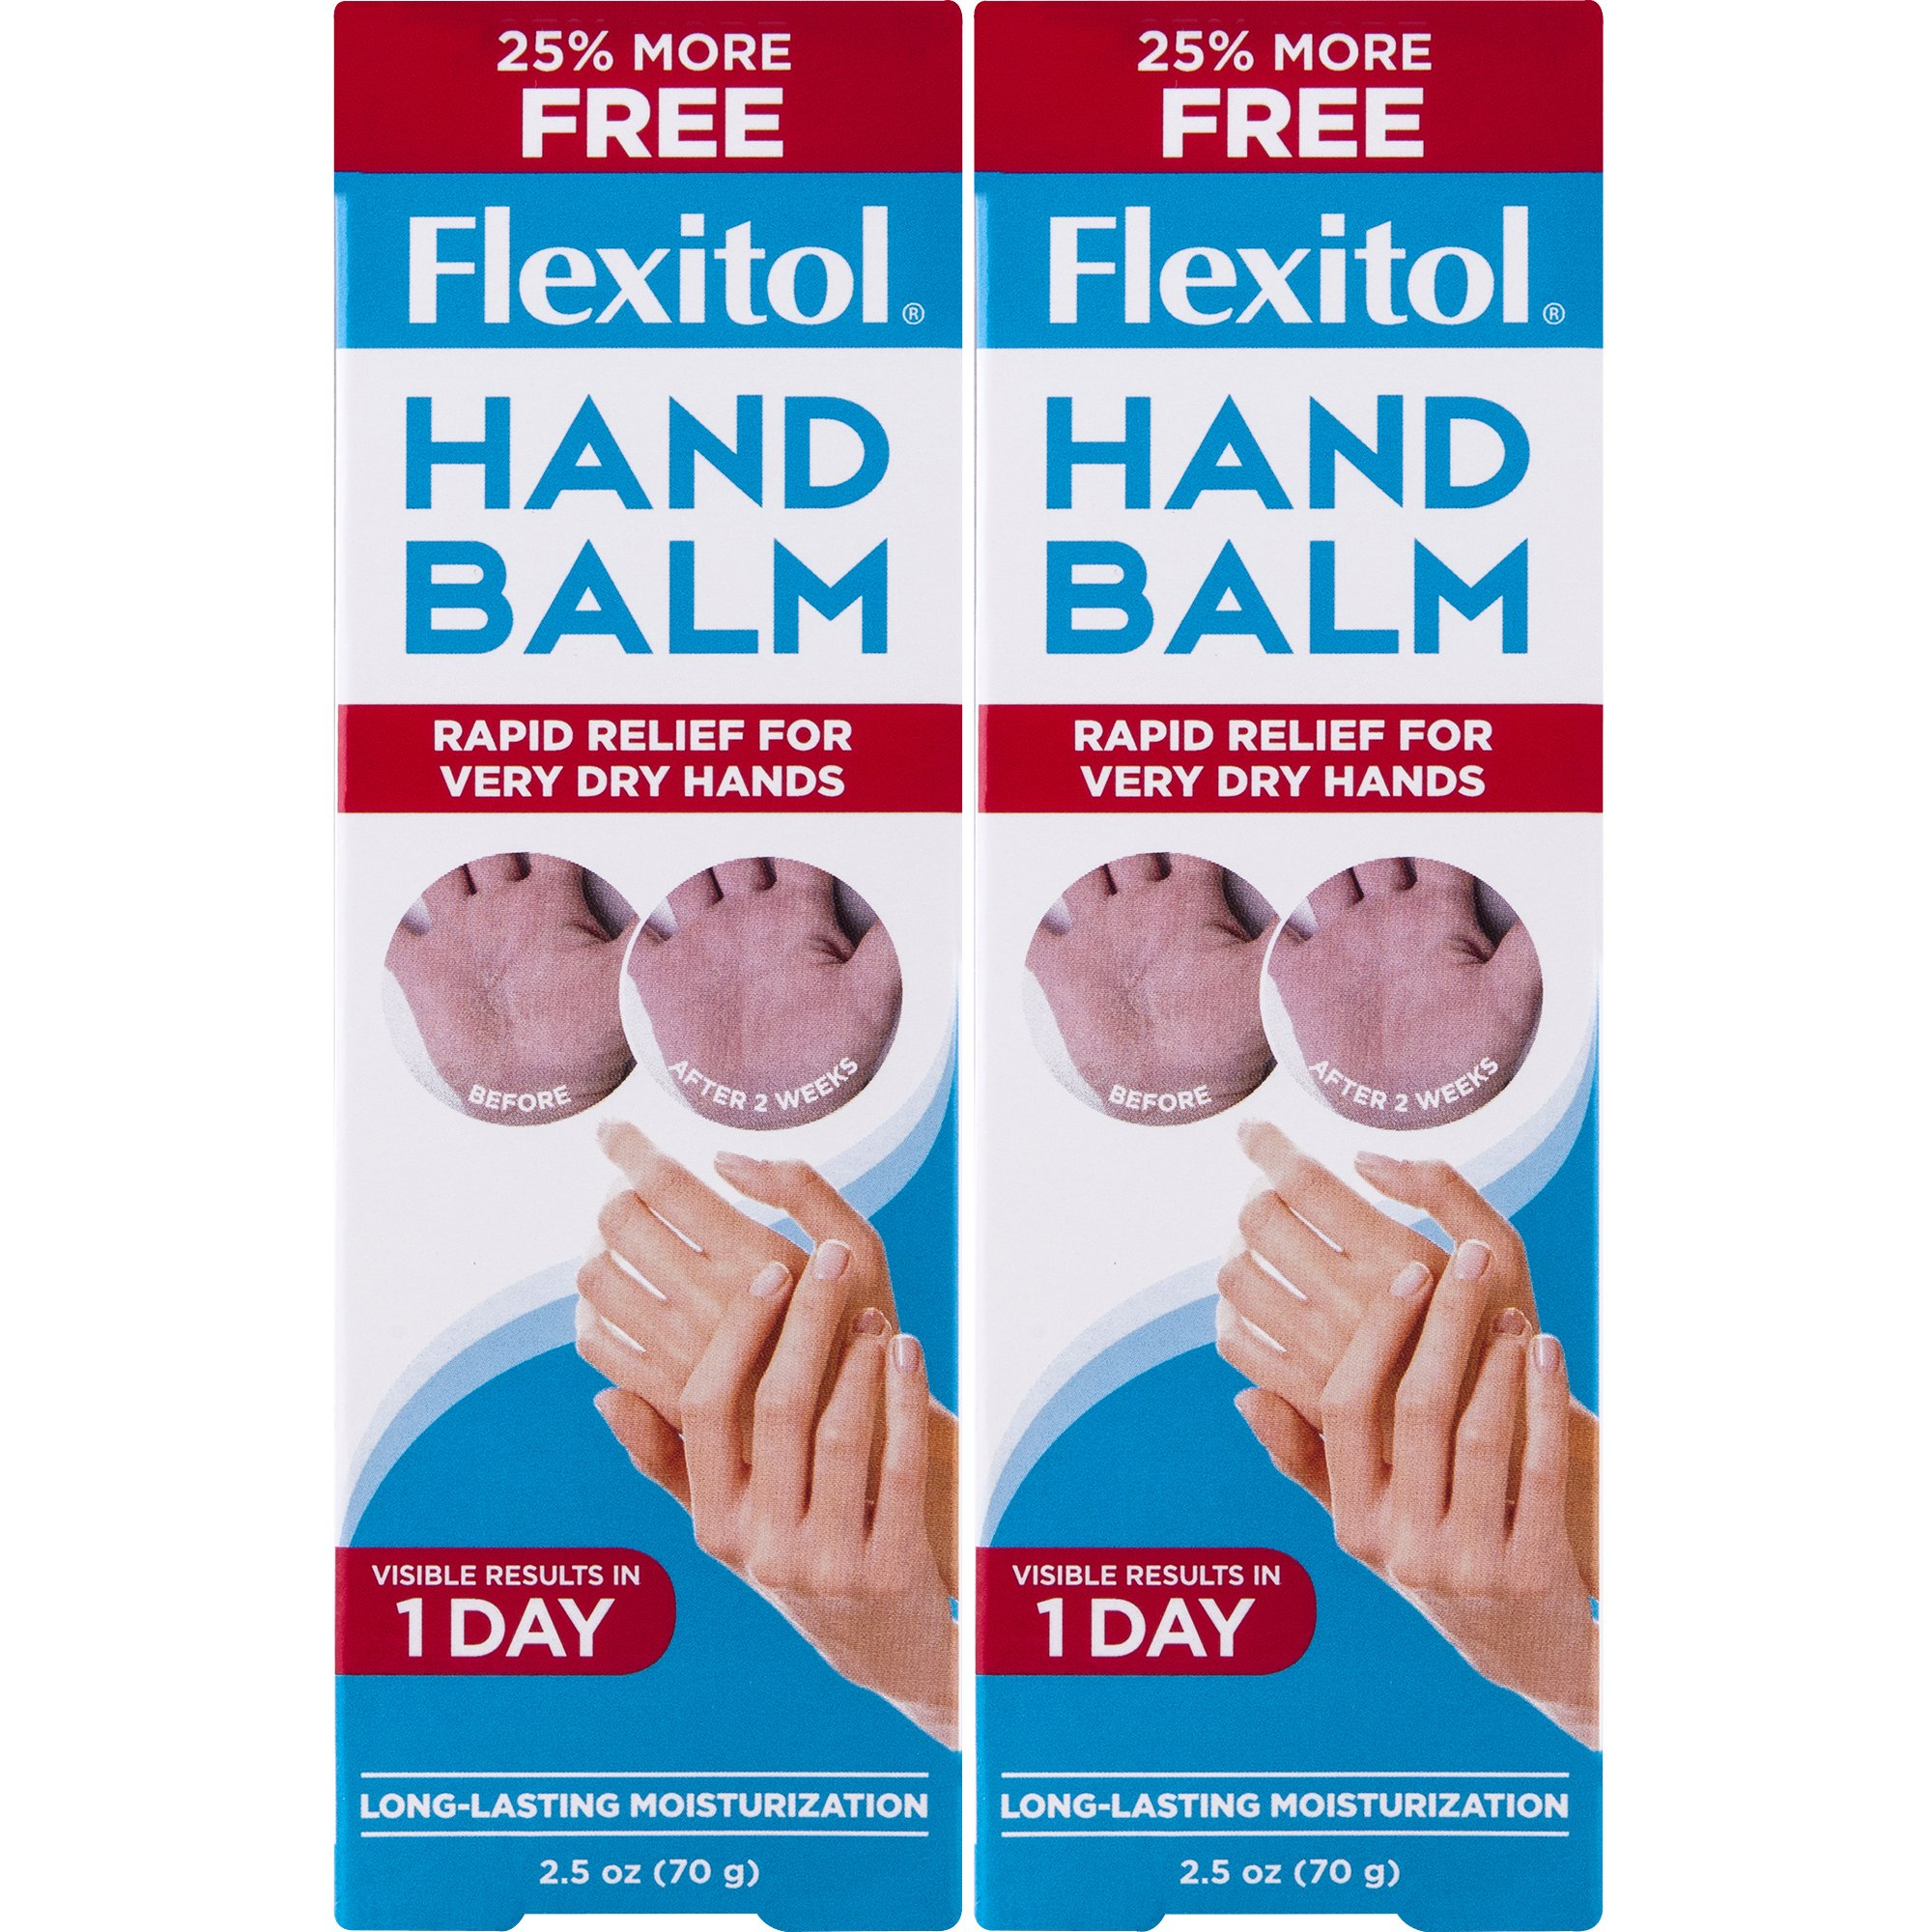 Flexitol Hand Balm for Fast Relief of Very Dry or Chapped Skin 2 Count Rich Moisturizing Hand Cream for Fast Relief of Very Dry or Chapped Skin, or Dryness Related to Eczema Psoriasis Dermatitis by Flexitol